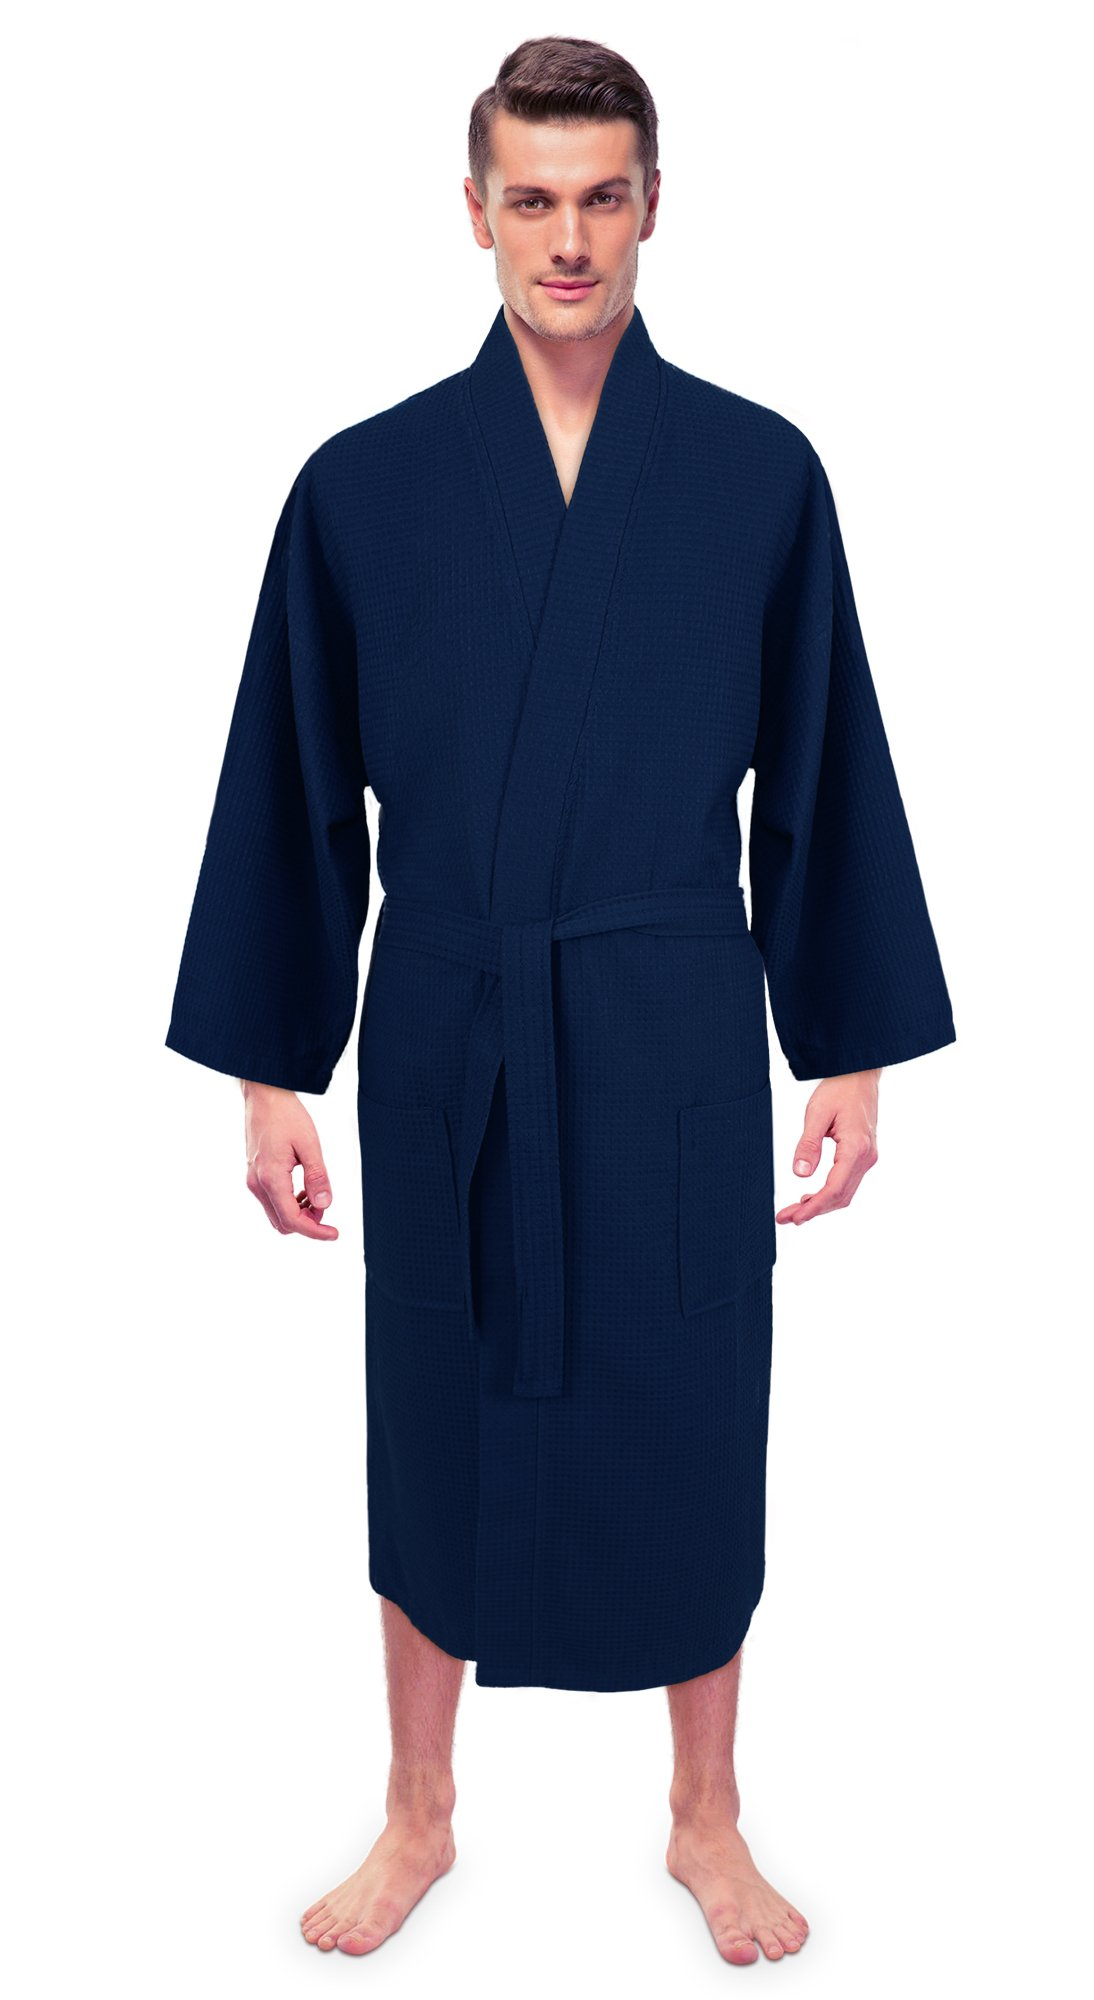 Turkuoise Men's Premium Turkish Cotton Lightweight Spa Bathrobe Made in Turkey